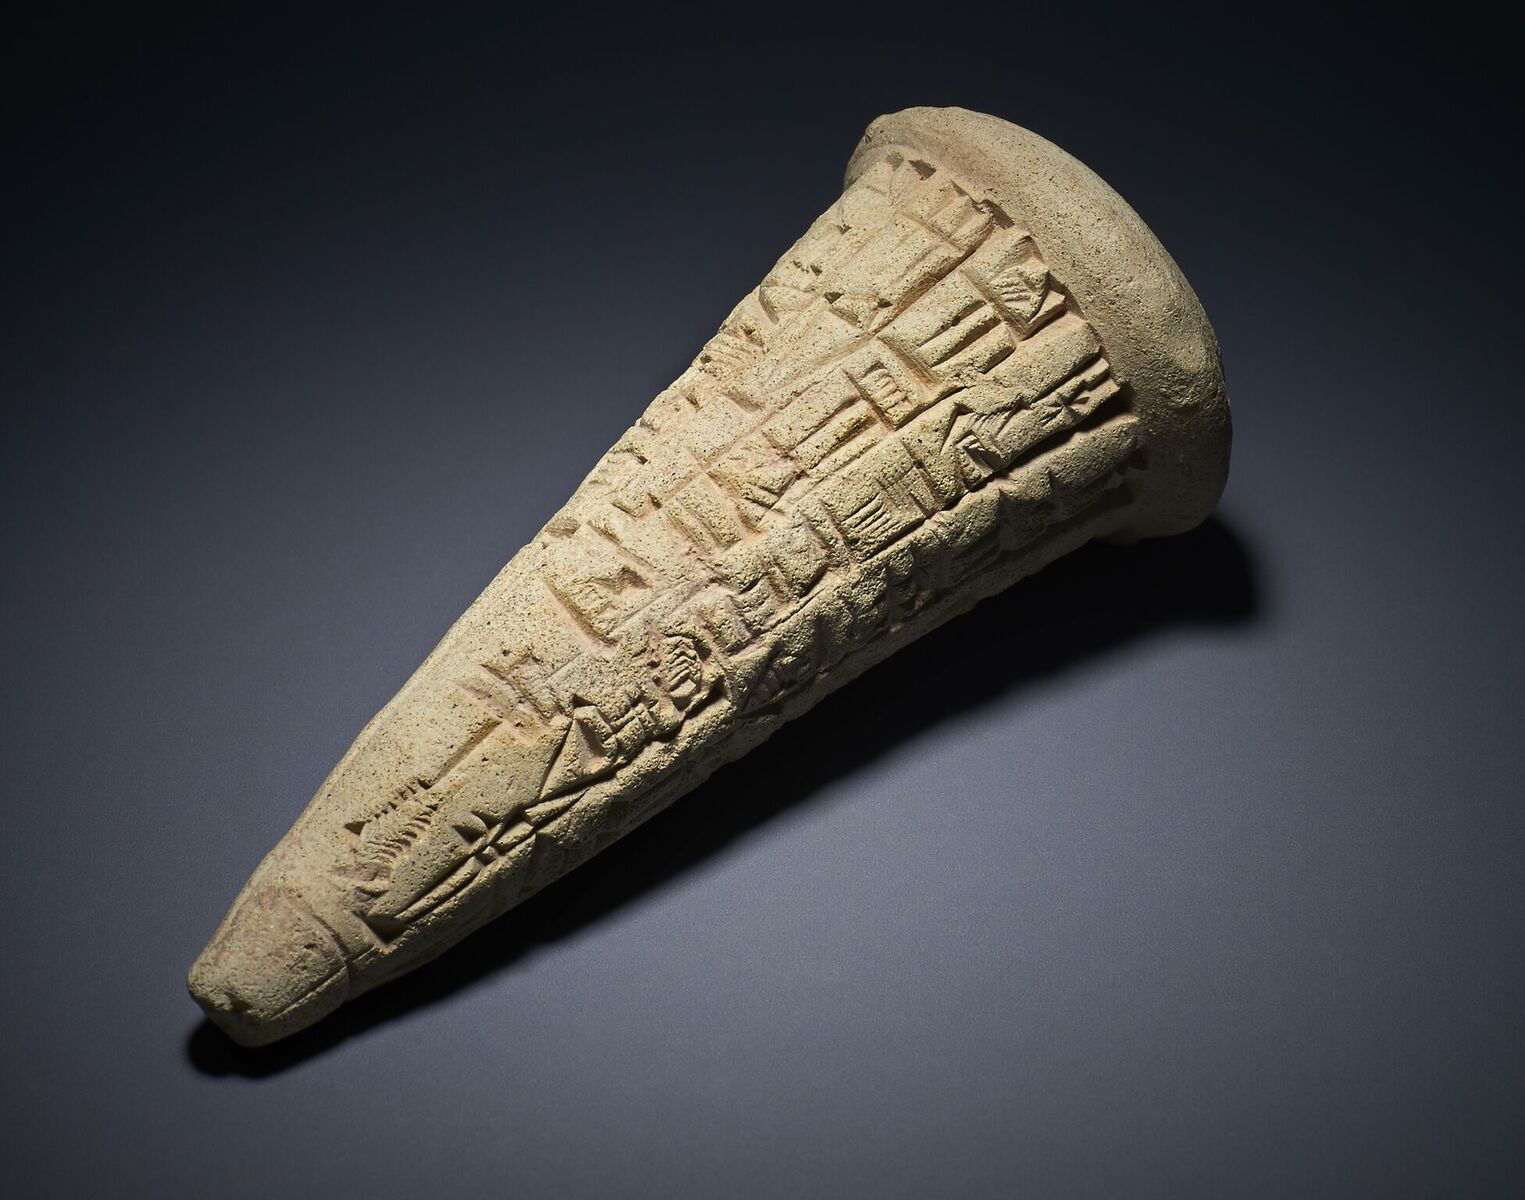 Iraq repatriated artifact